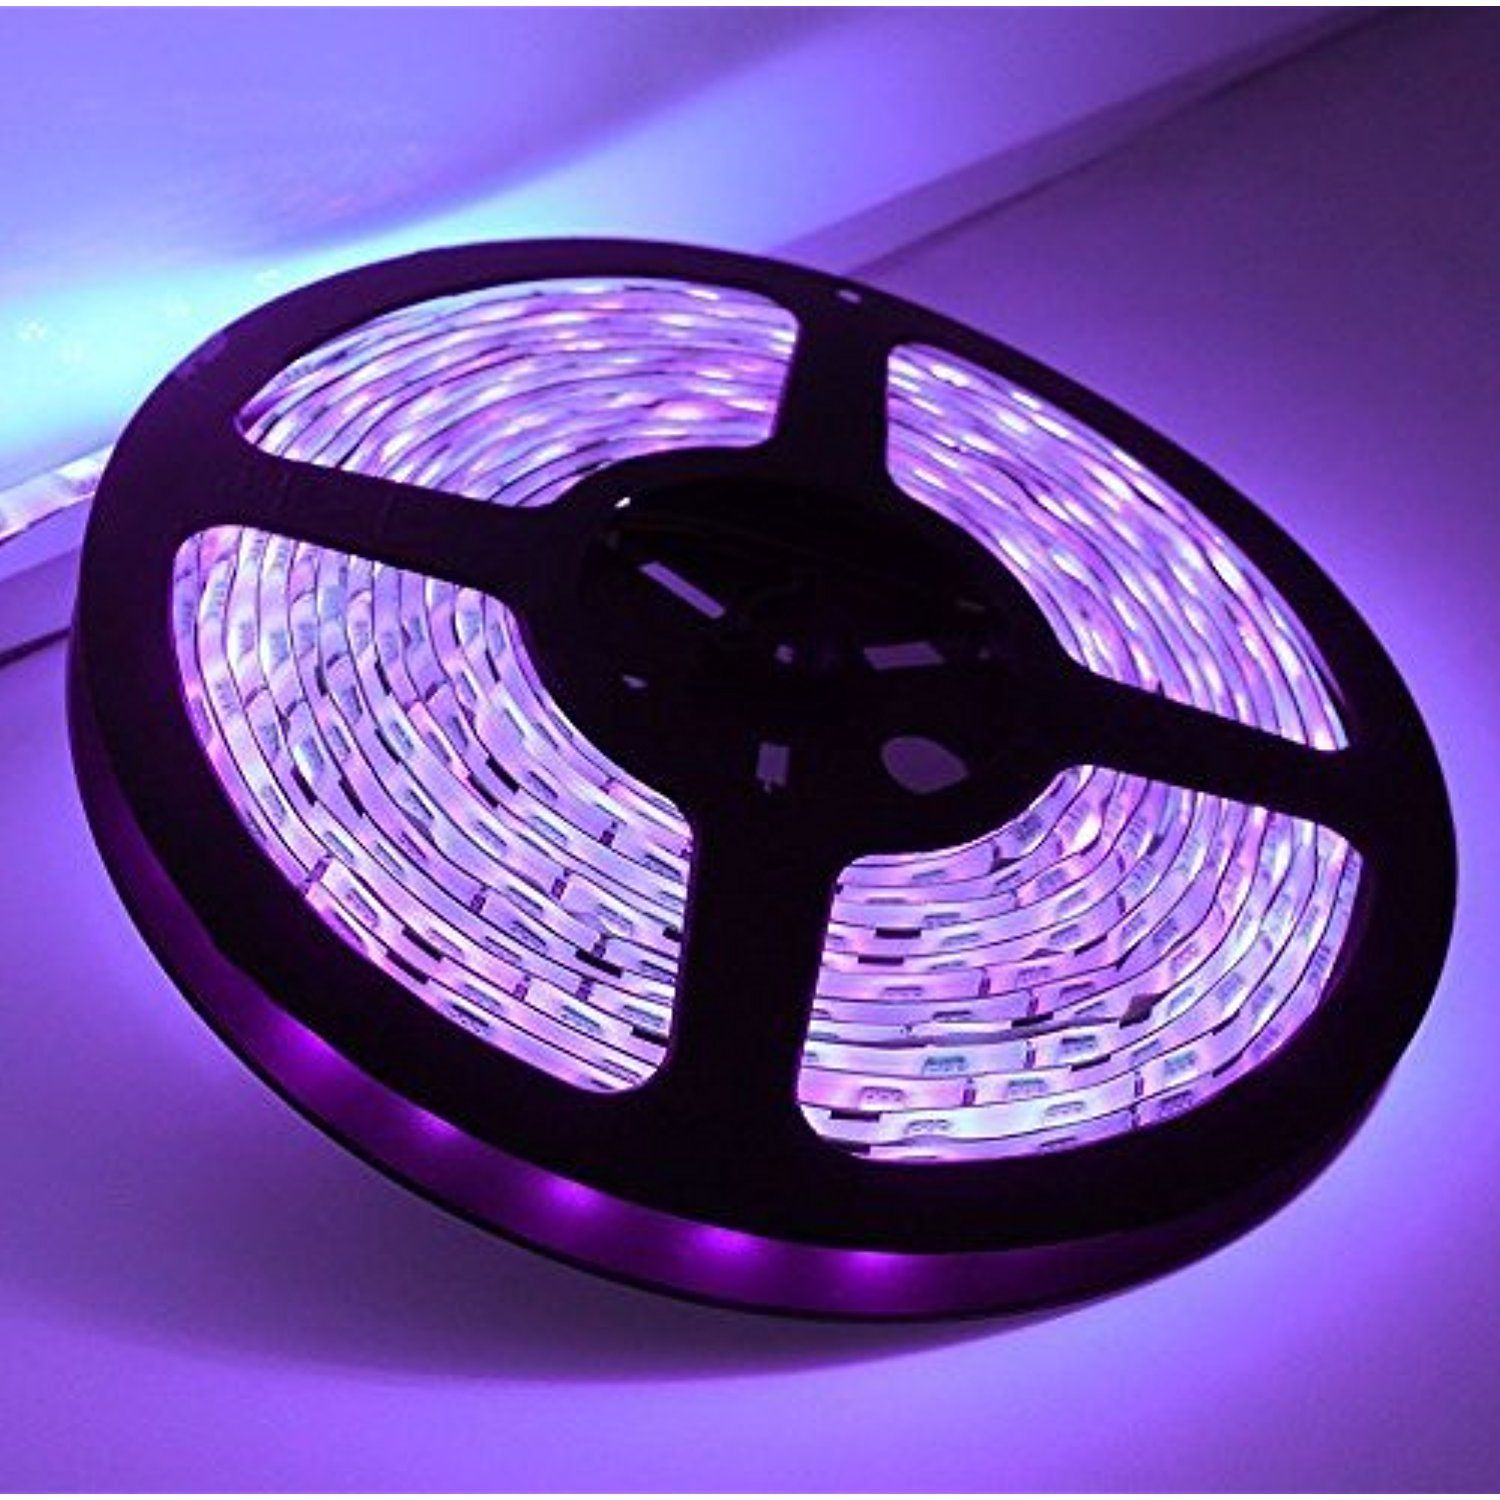 12V Waterproof Led Light Strips Gorgeous Waterresistance Ip65 Uvultraviolet Black Lights 12V 24Watt 3528 Design Inspiration